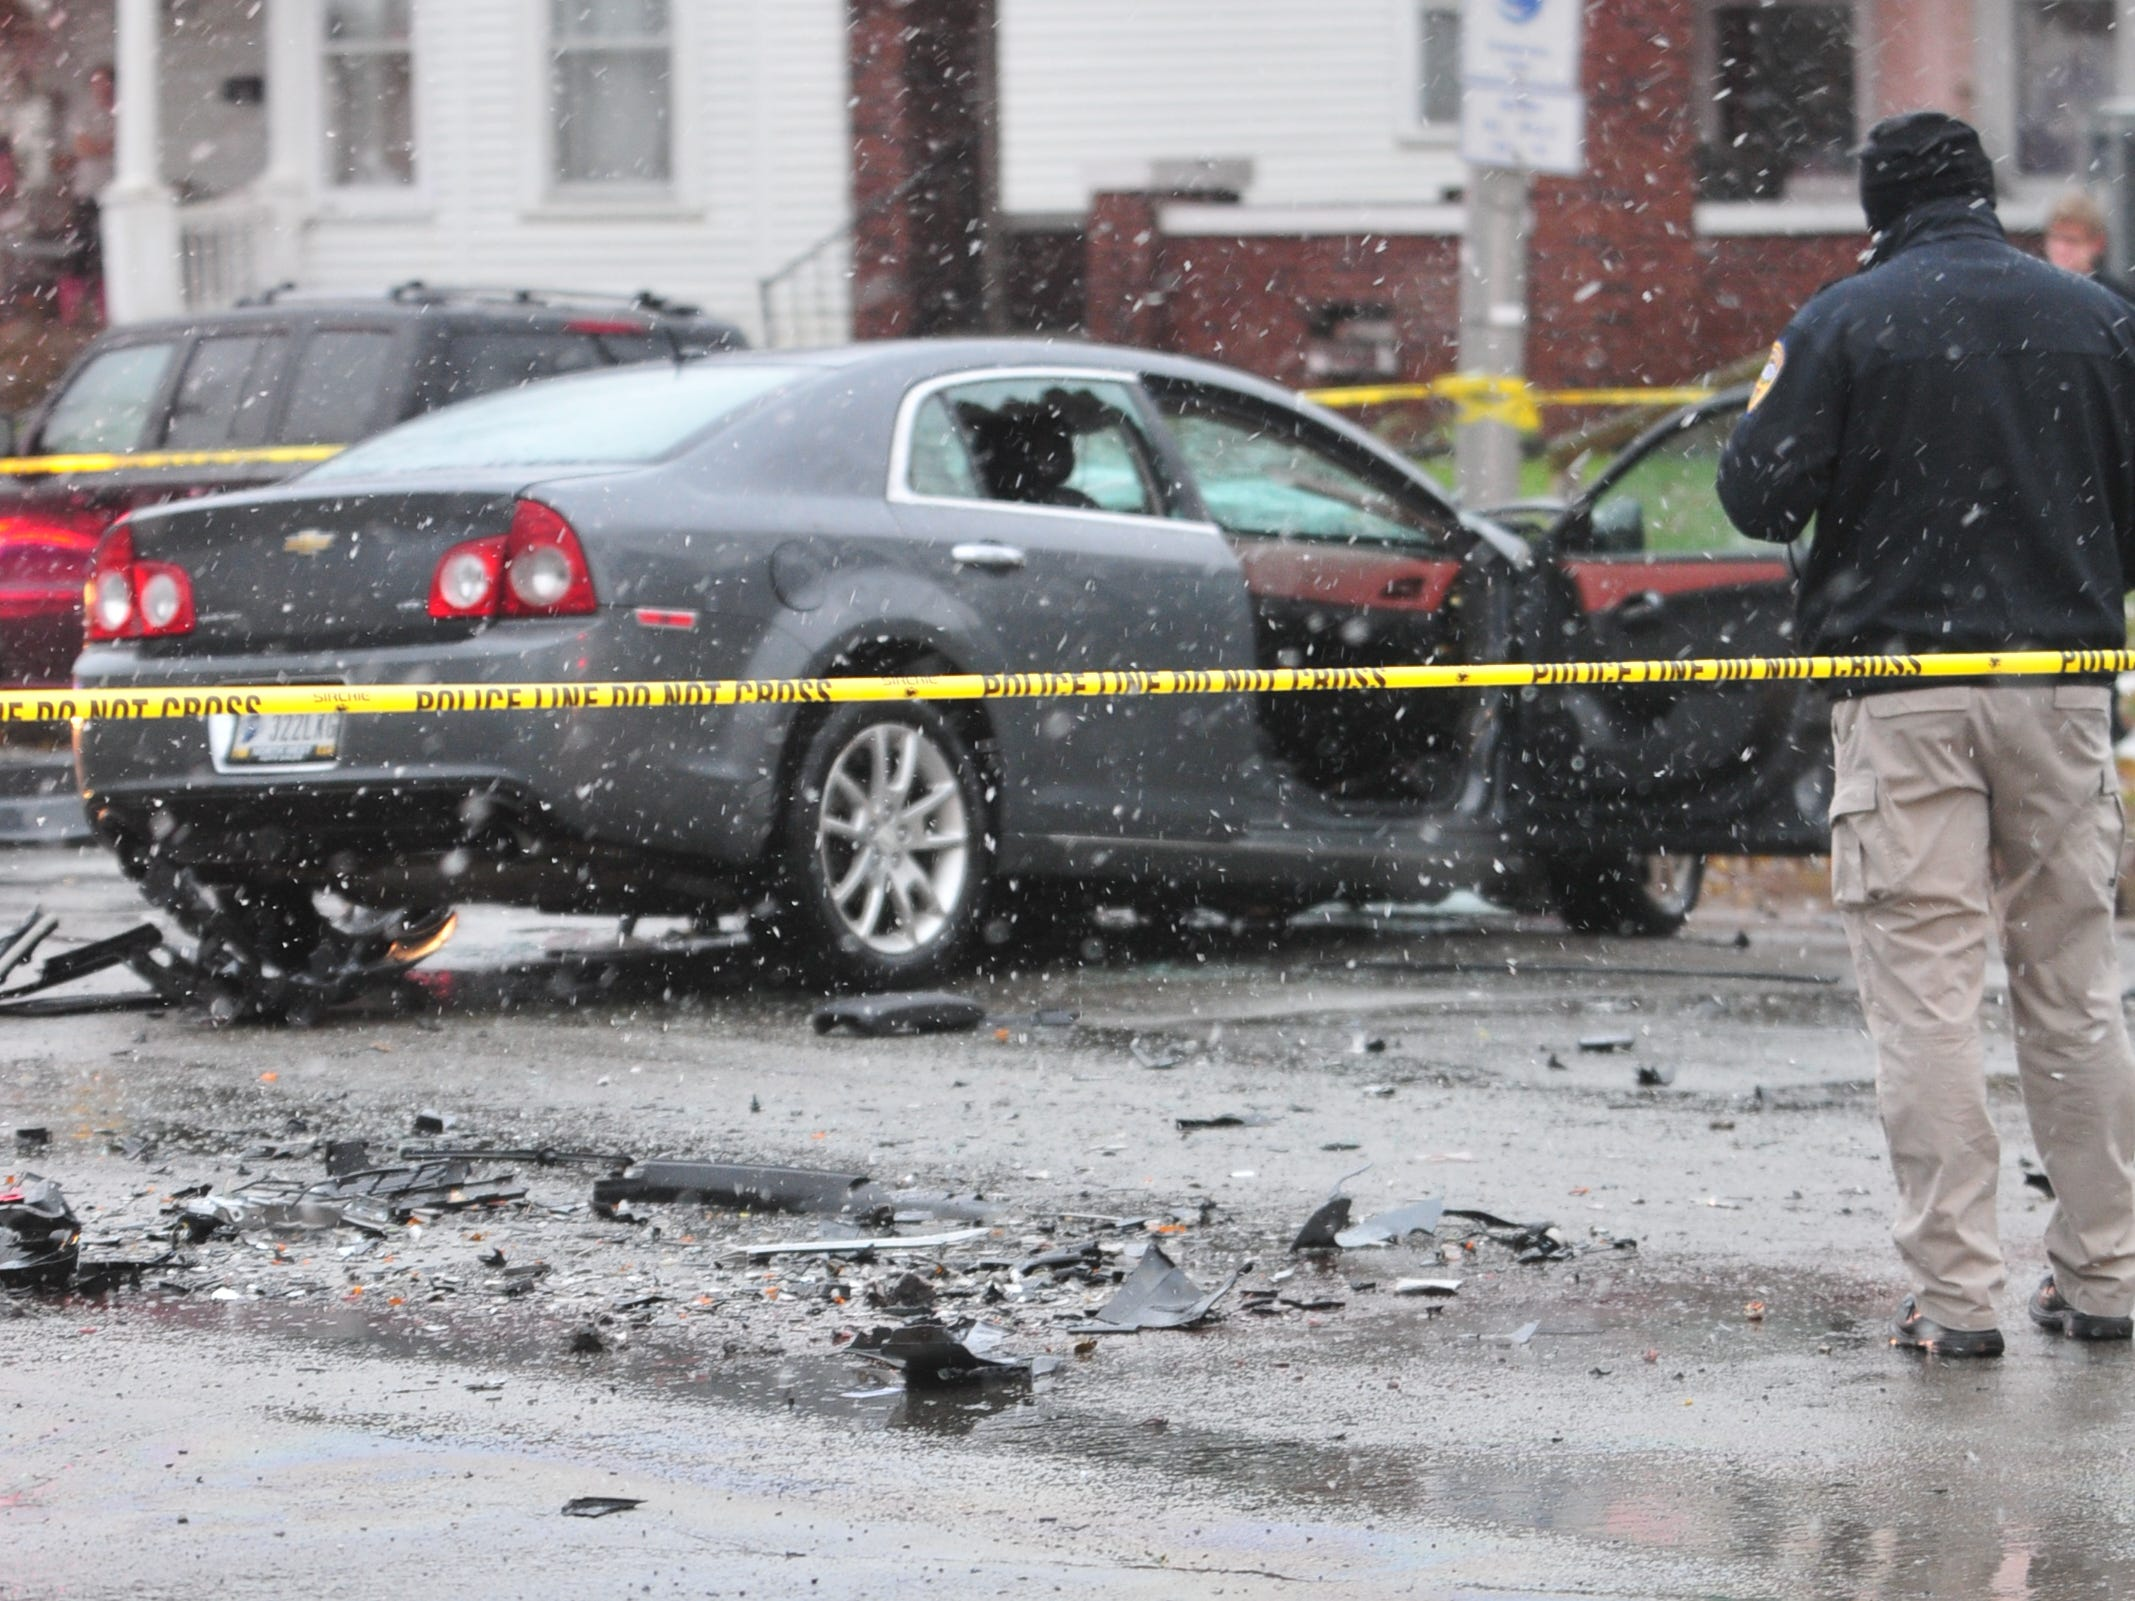 A two-vehicle accident scattered debris Thursday on Richmond Avenue.